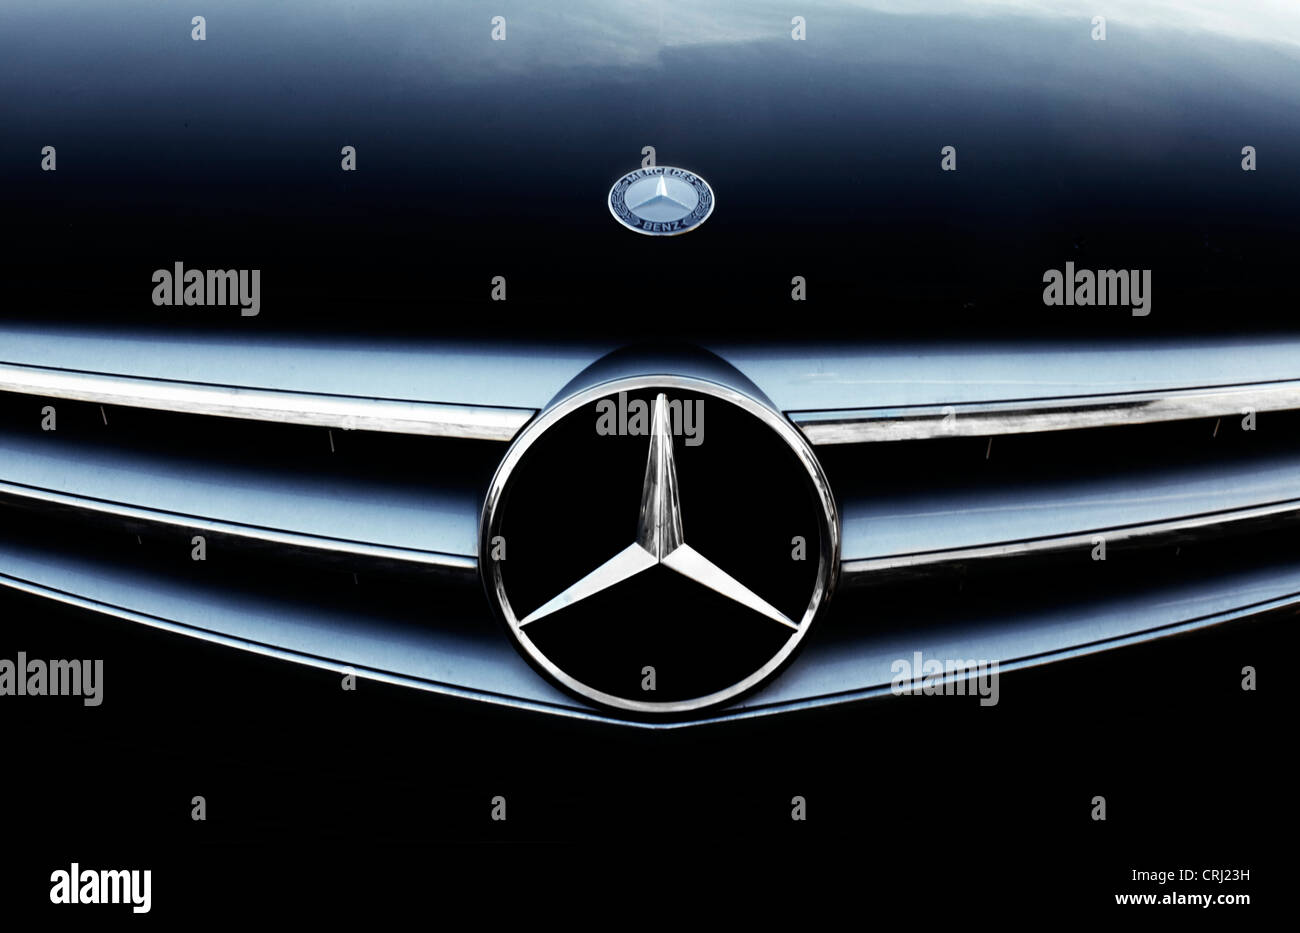 Mercedes Benz Logo High Resolution Stock Photography And Images Alamy